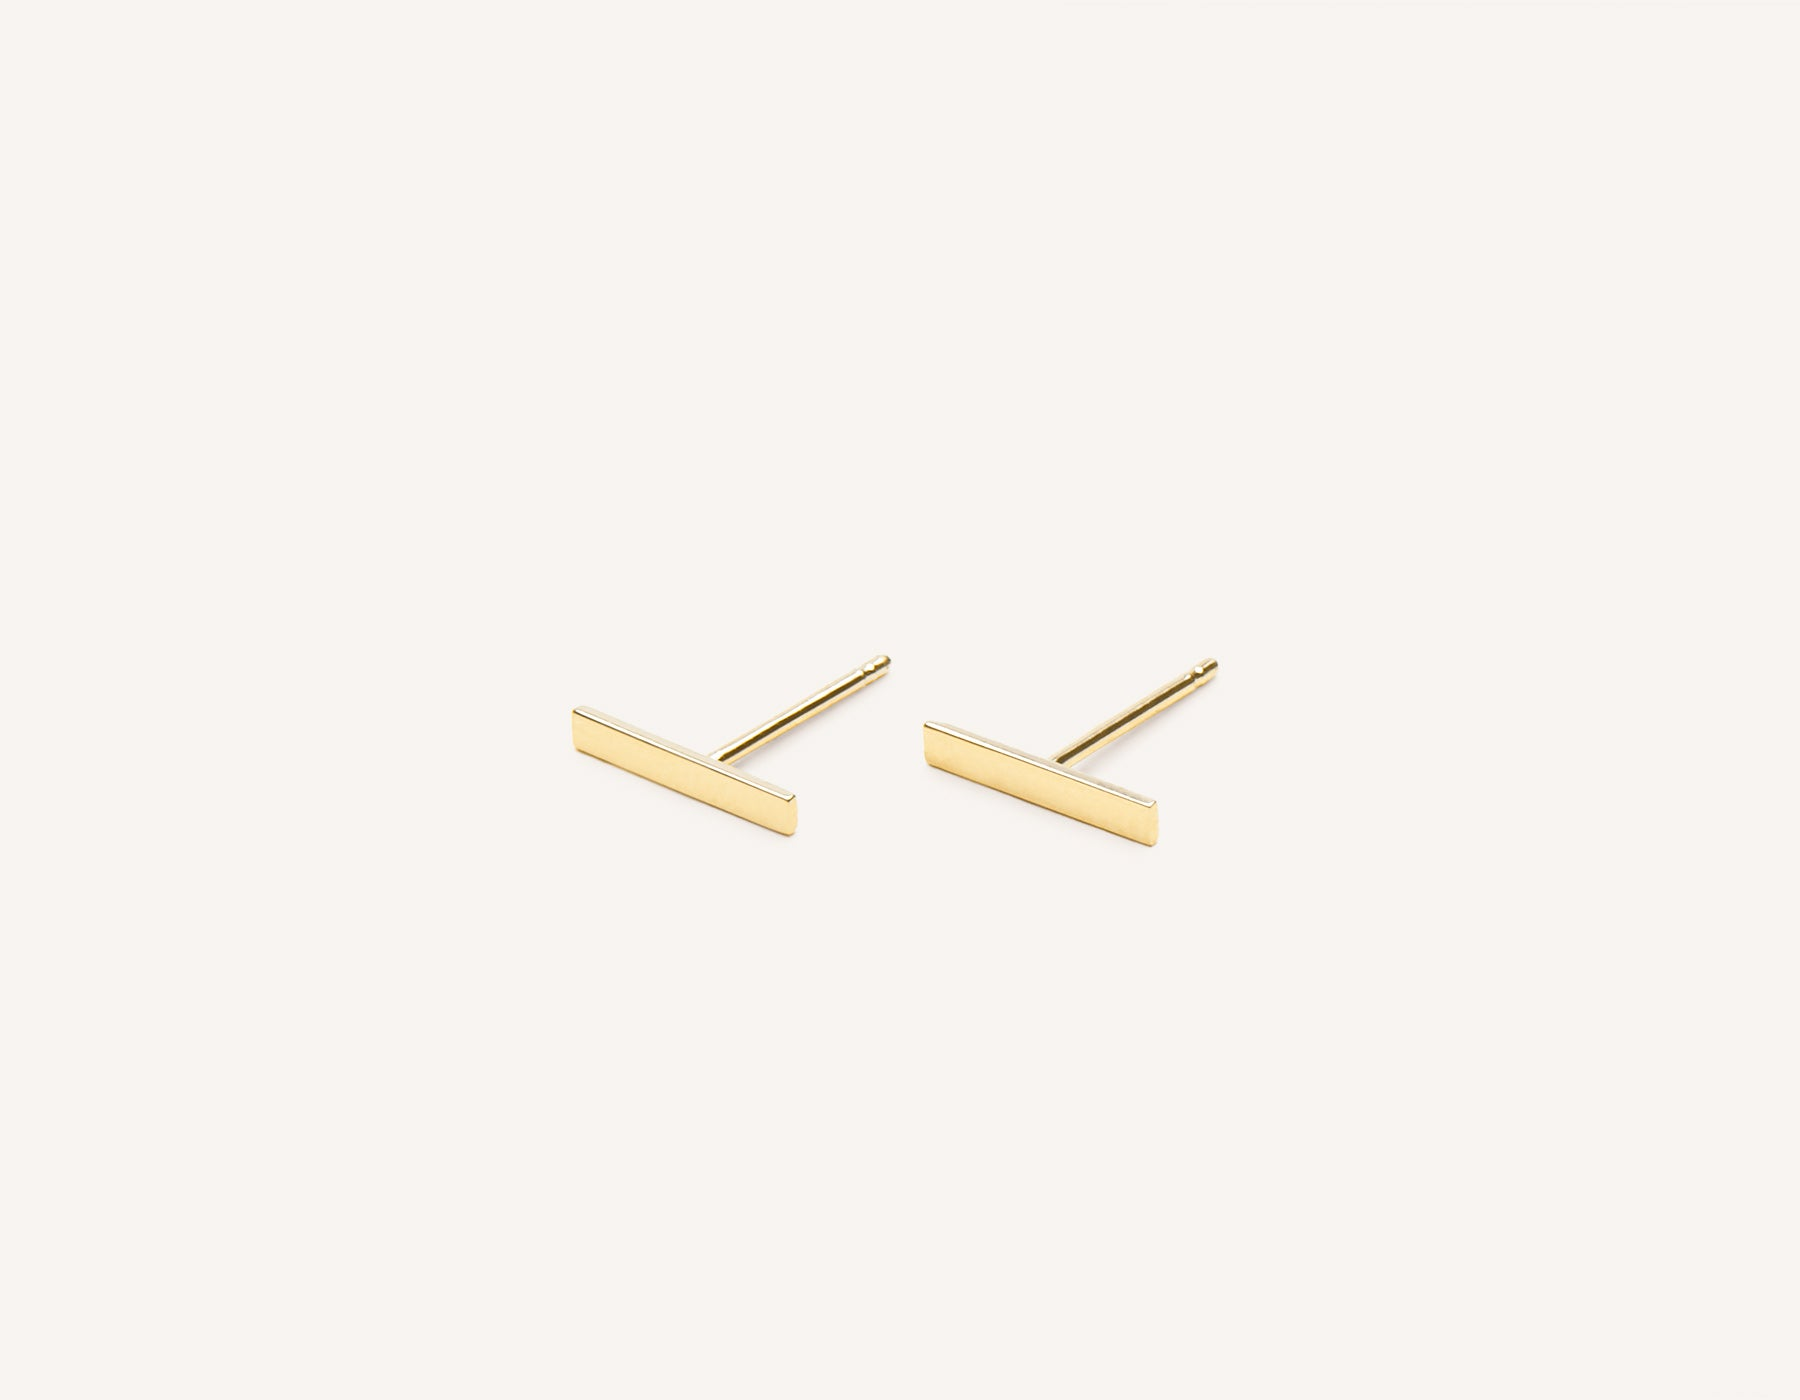 ef599d0af Simple classic Line Stud earrings 14k solid gold Vrai & Oro minimalist  jewelry, 14K Yellow